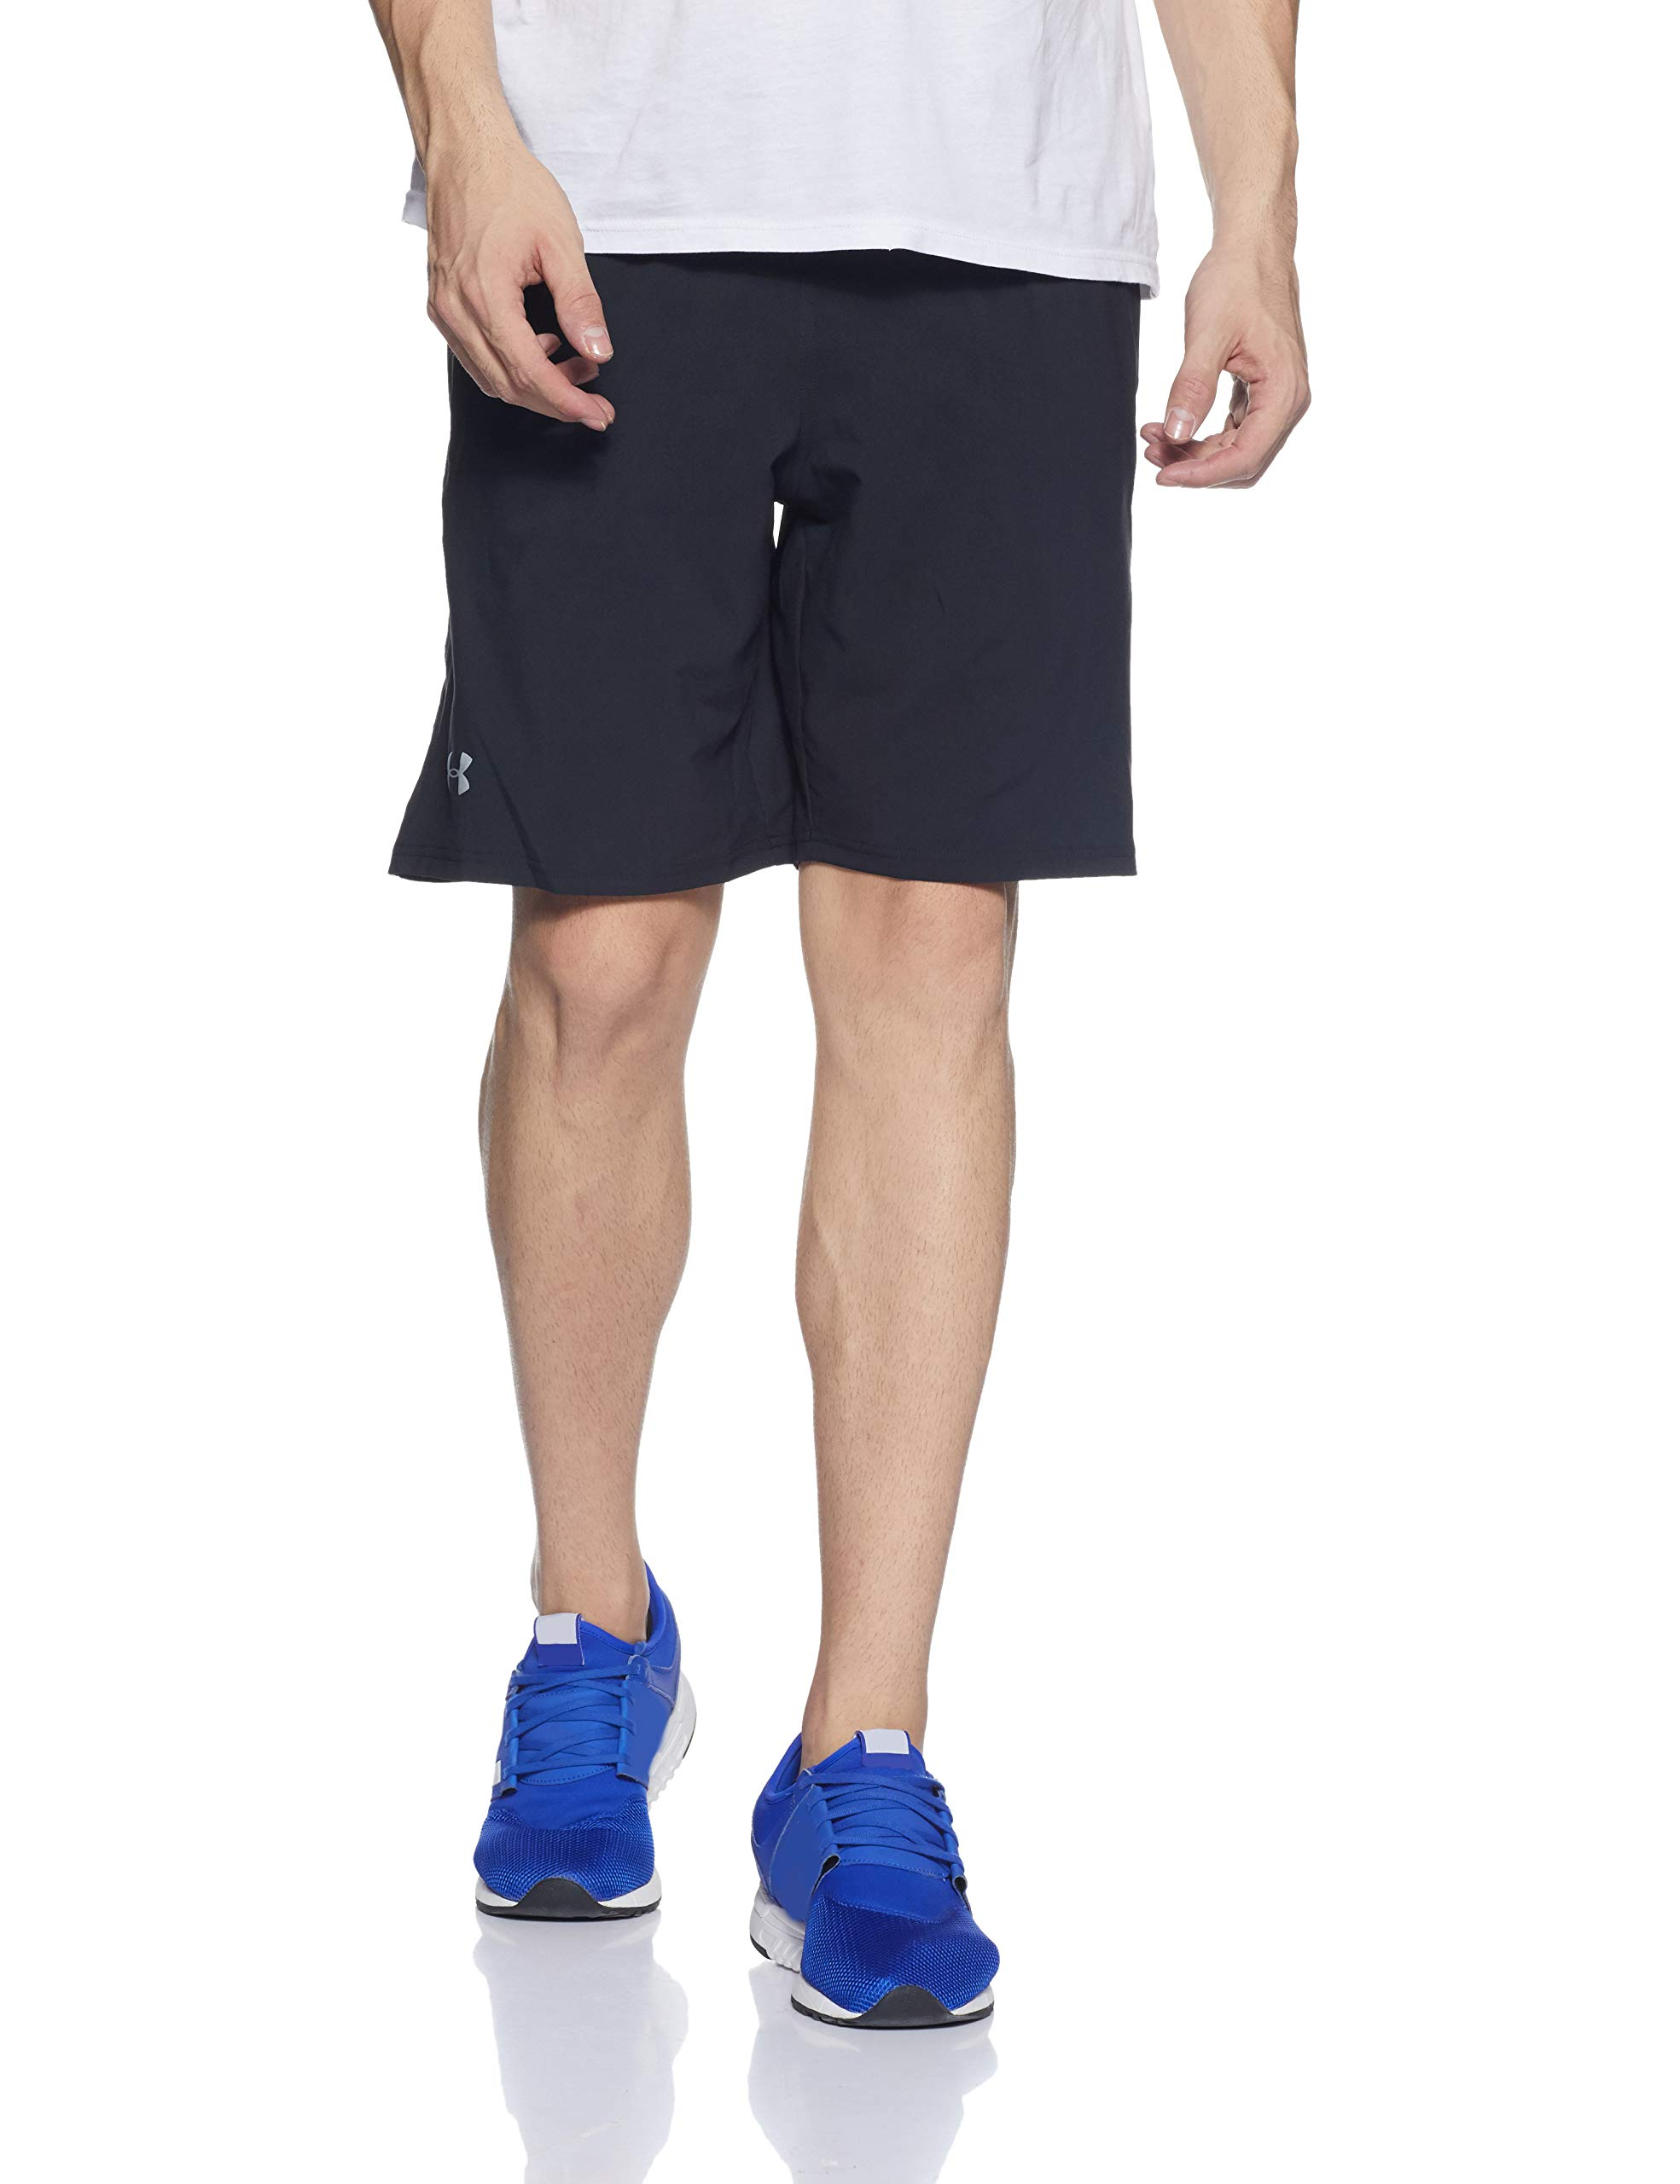 Under Armour Men's Launch 9'' Shorts, Black/Reflective, X-Small